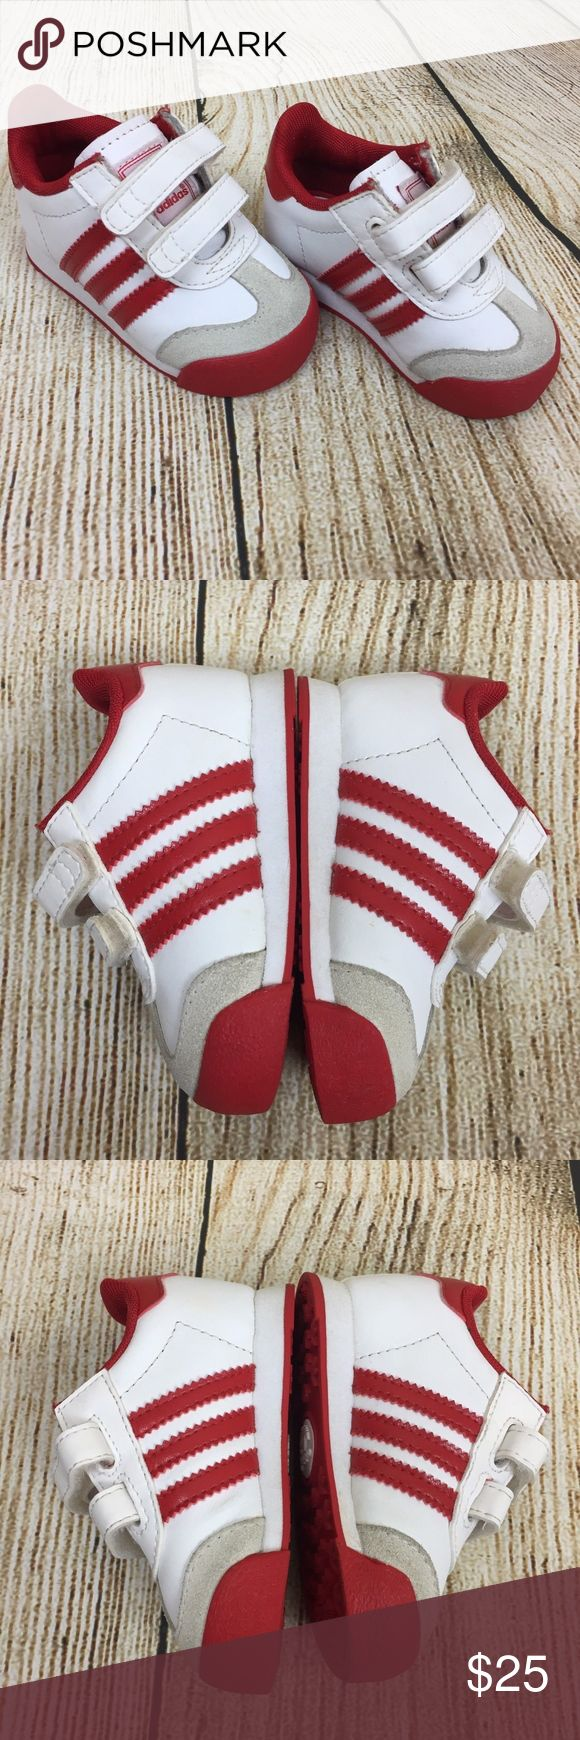 Adidas AdiFit Baby Toddler Shoes Red White ADIDAS AdiFit Baby Toddler Unisex Athletic Sneakers Size 4K White Red EUC  Size: 4K Brand: Adidas Condition: Excellent pre-owned condition Ships in 24 hours adidas Shoes Sneakers